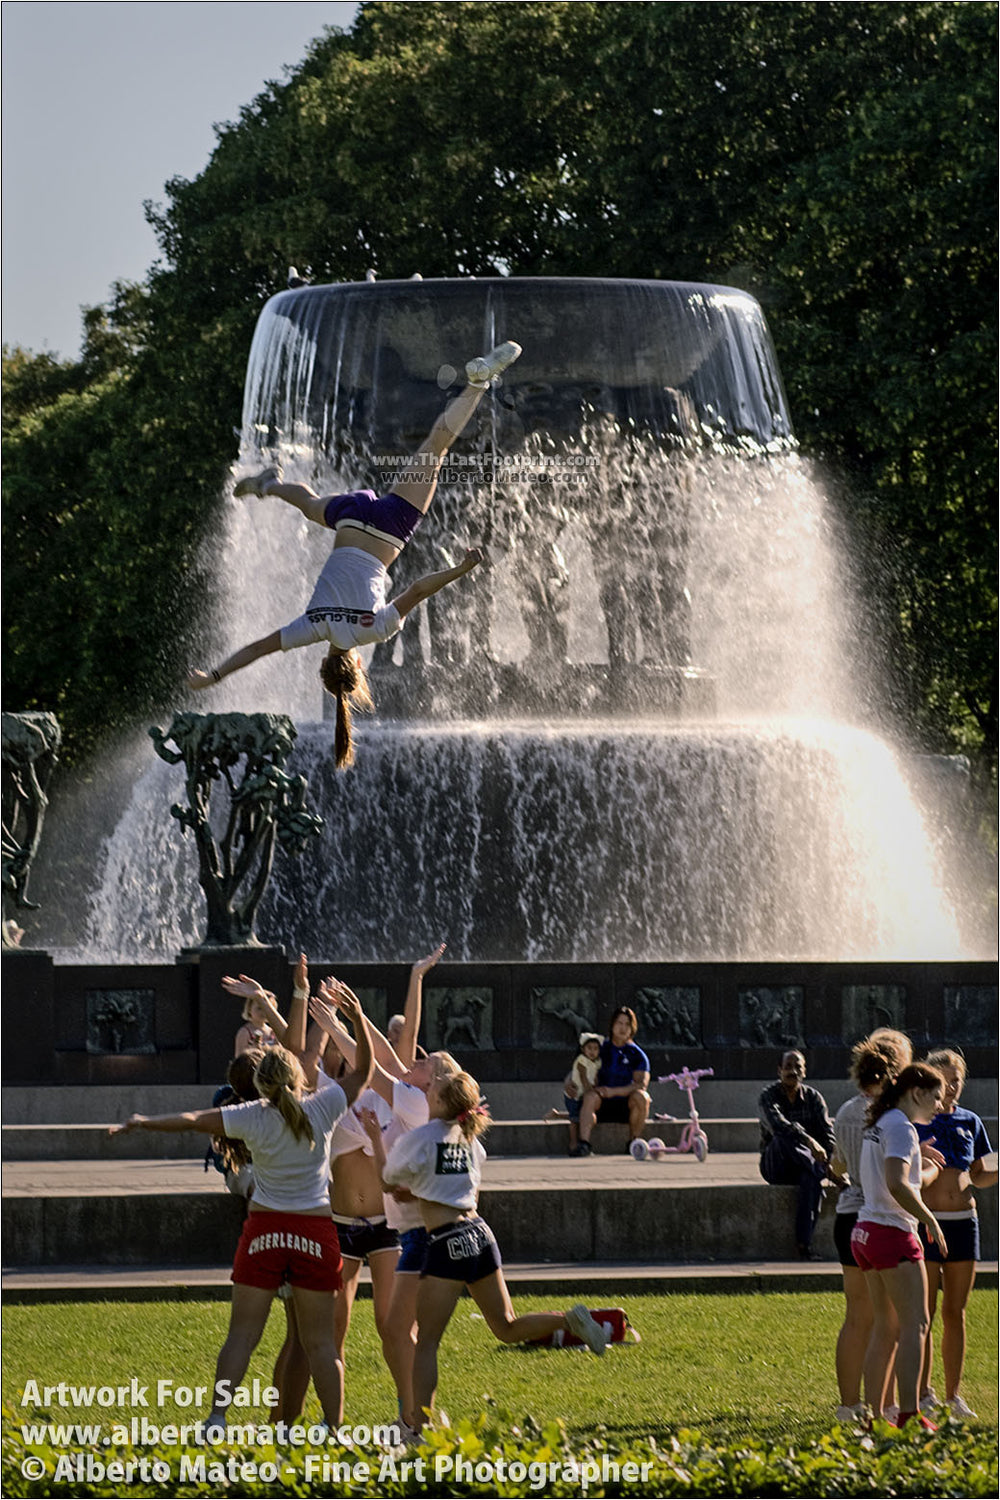 Cheerleaders training, Vigeland Park, Oslo, Norway.